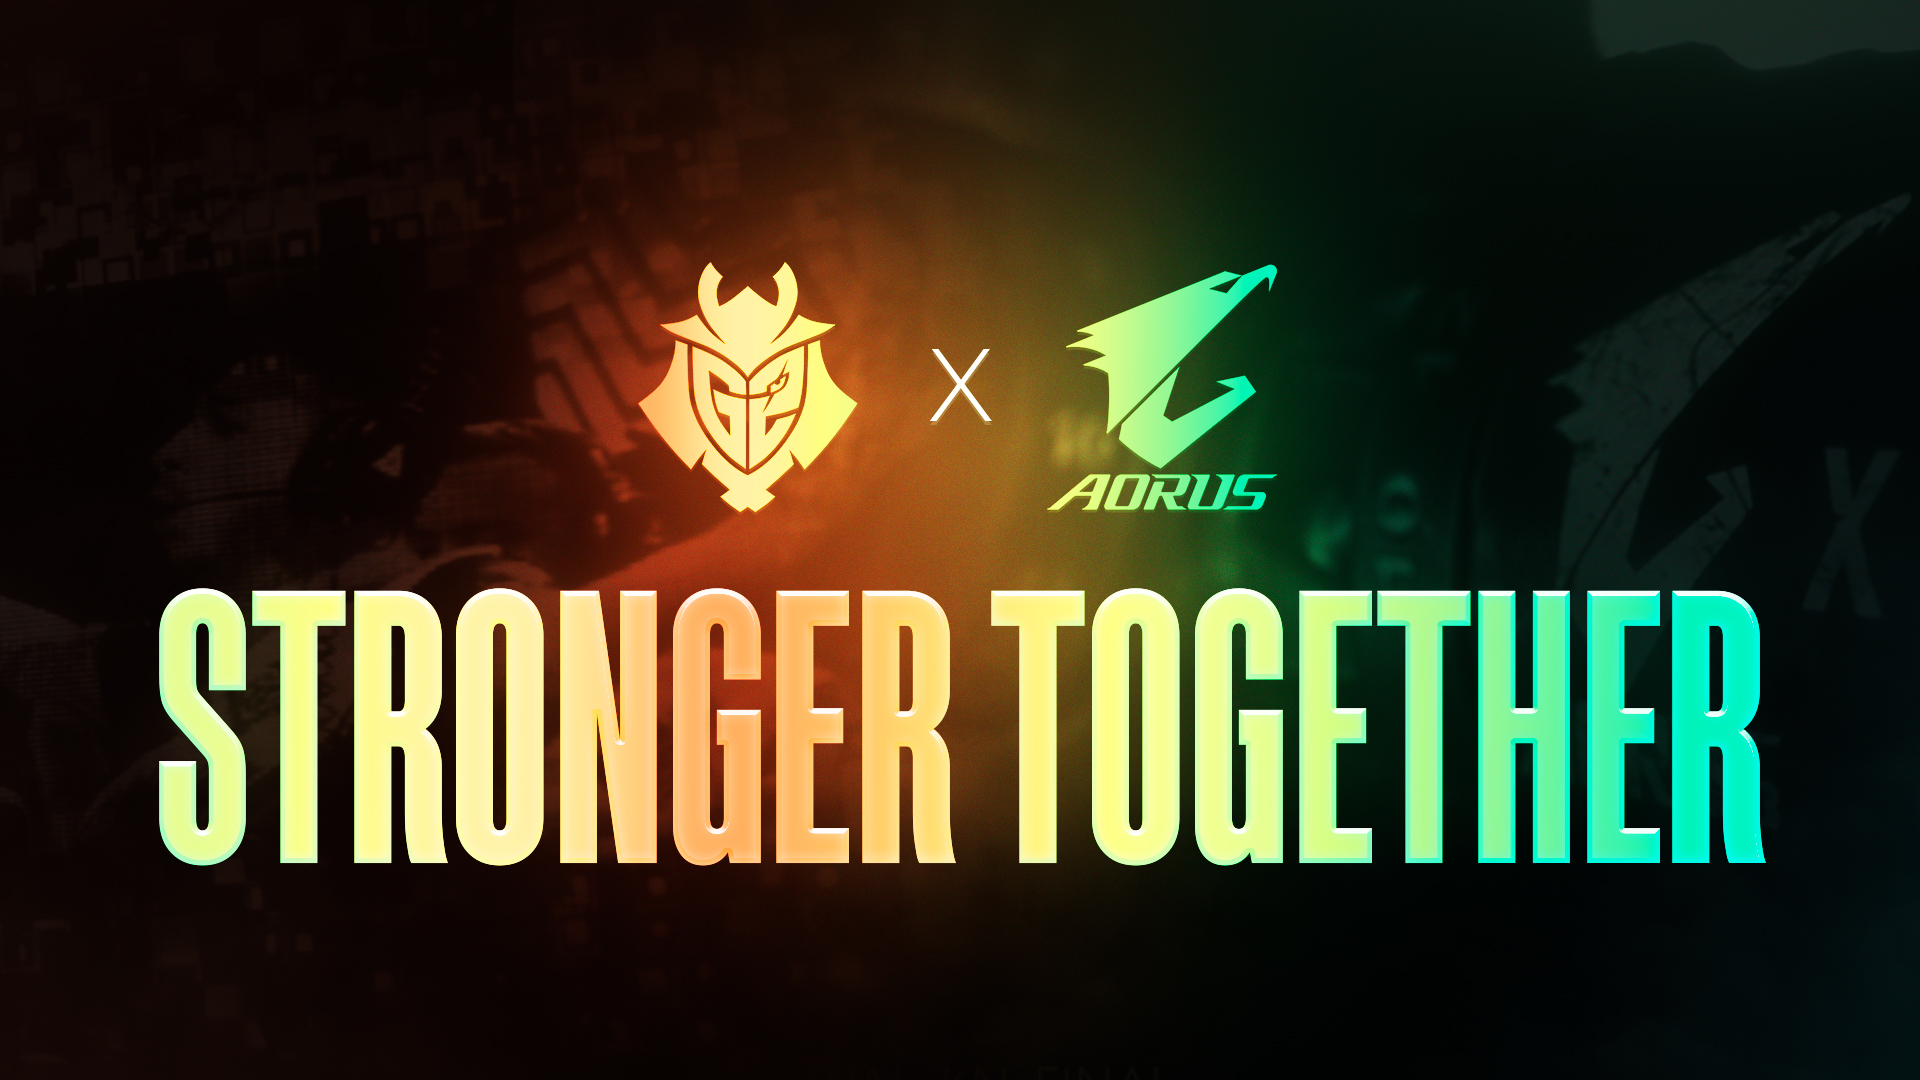 GIGABYTE AORUS and G2 Esports Renew Partnership for a 4th Term